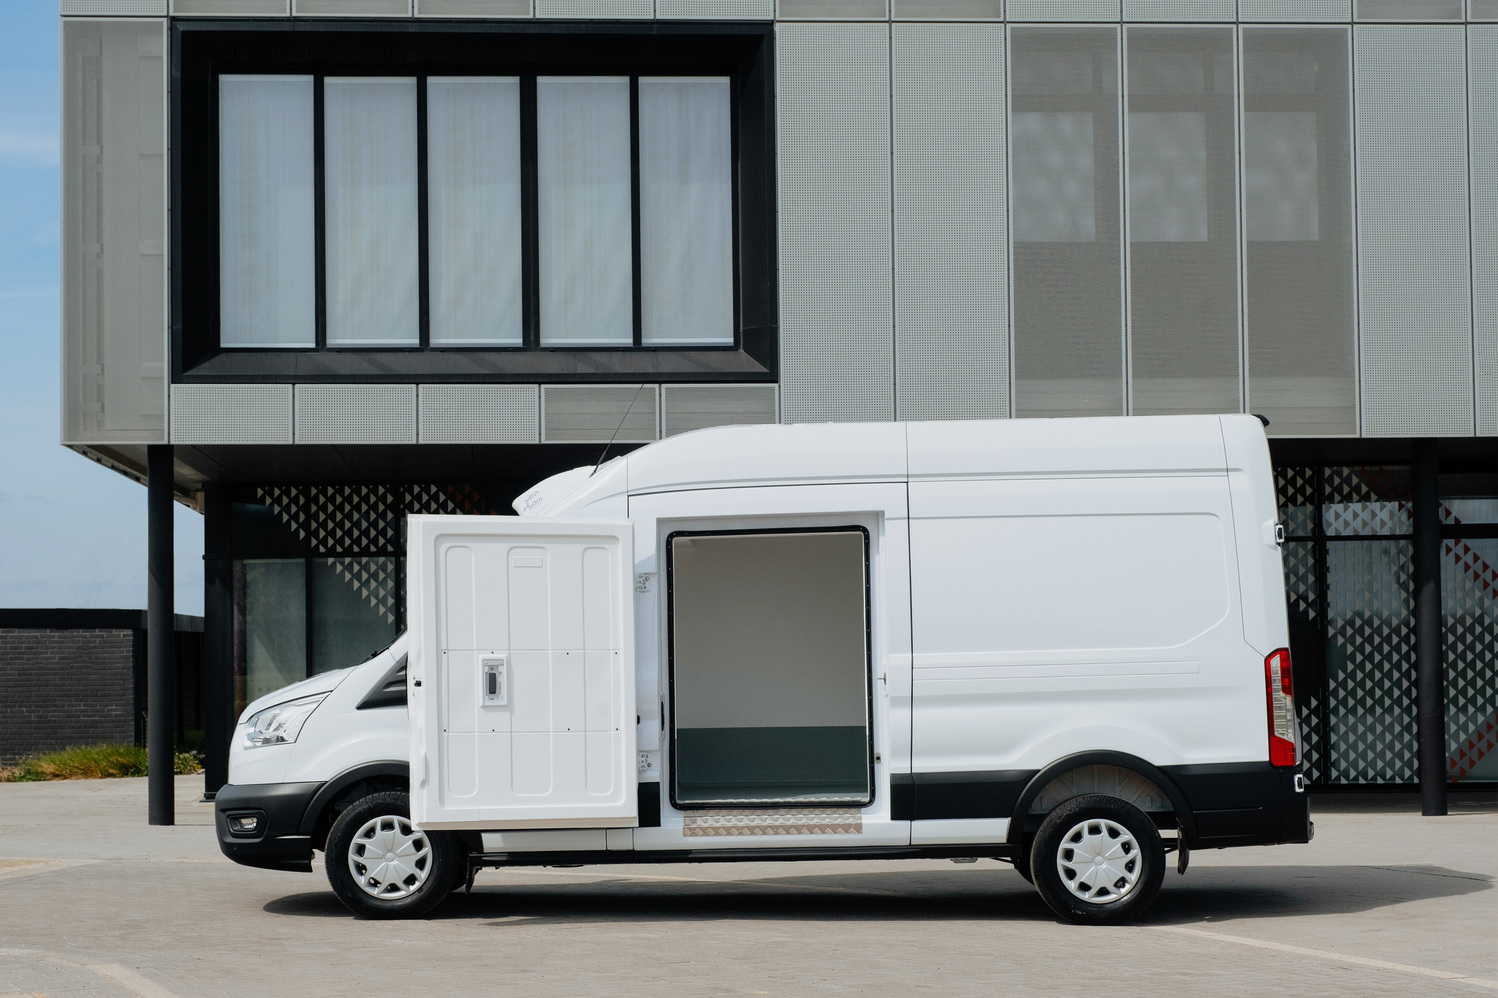 Transit refrigerated side view